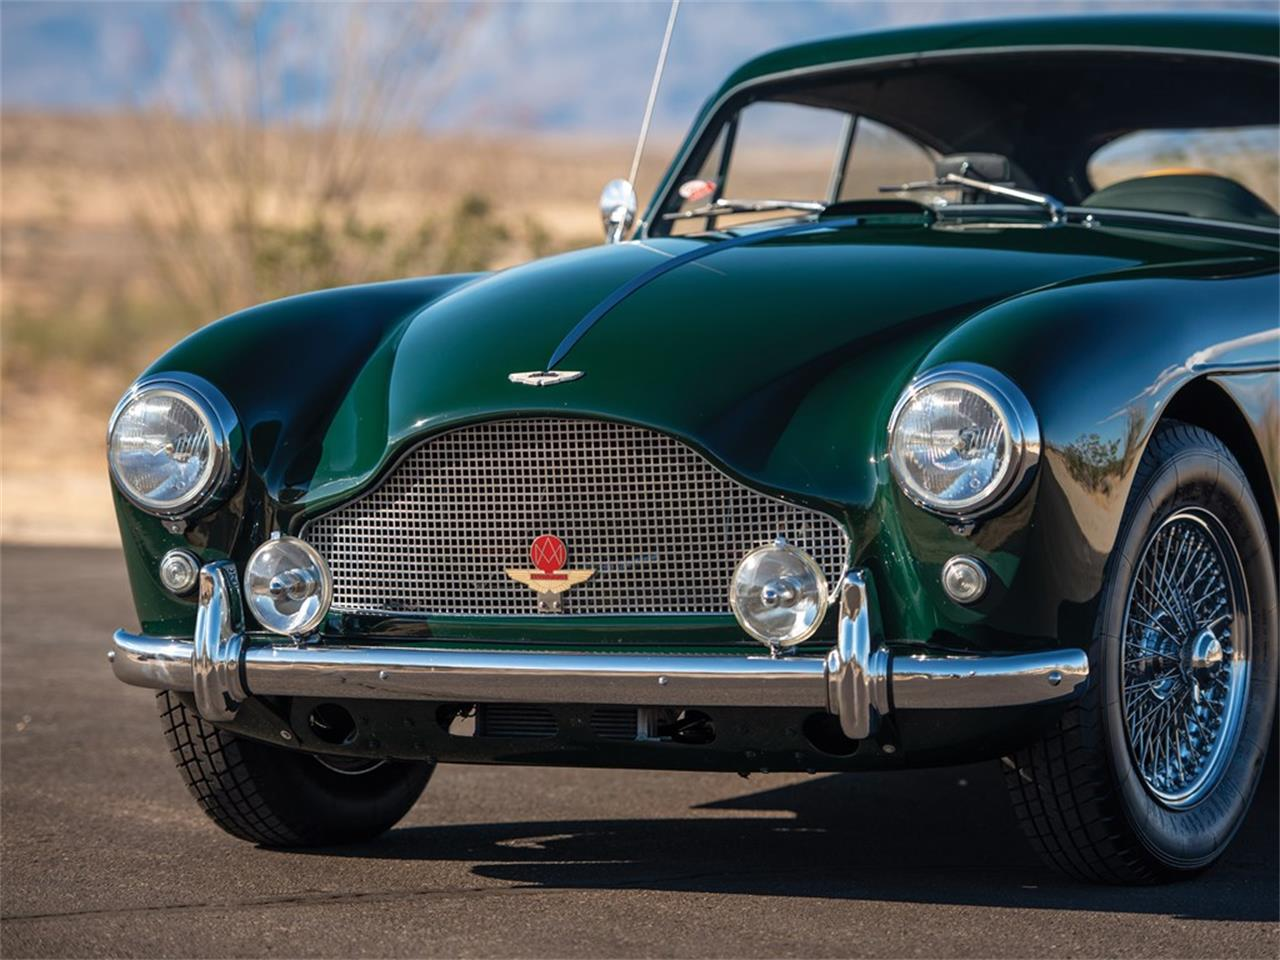 Large Picture of 1957 Aston Martin DB 2/4 MKIII located in California Offered by RM Sotheby's - Q4GZ